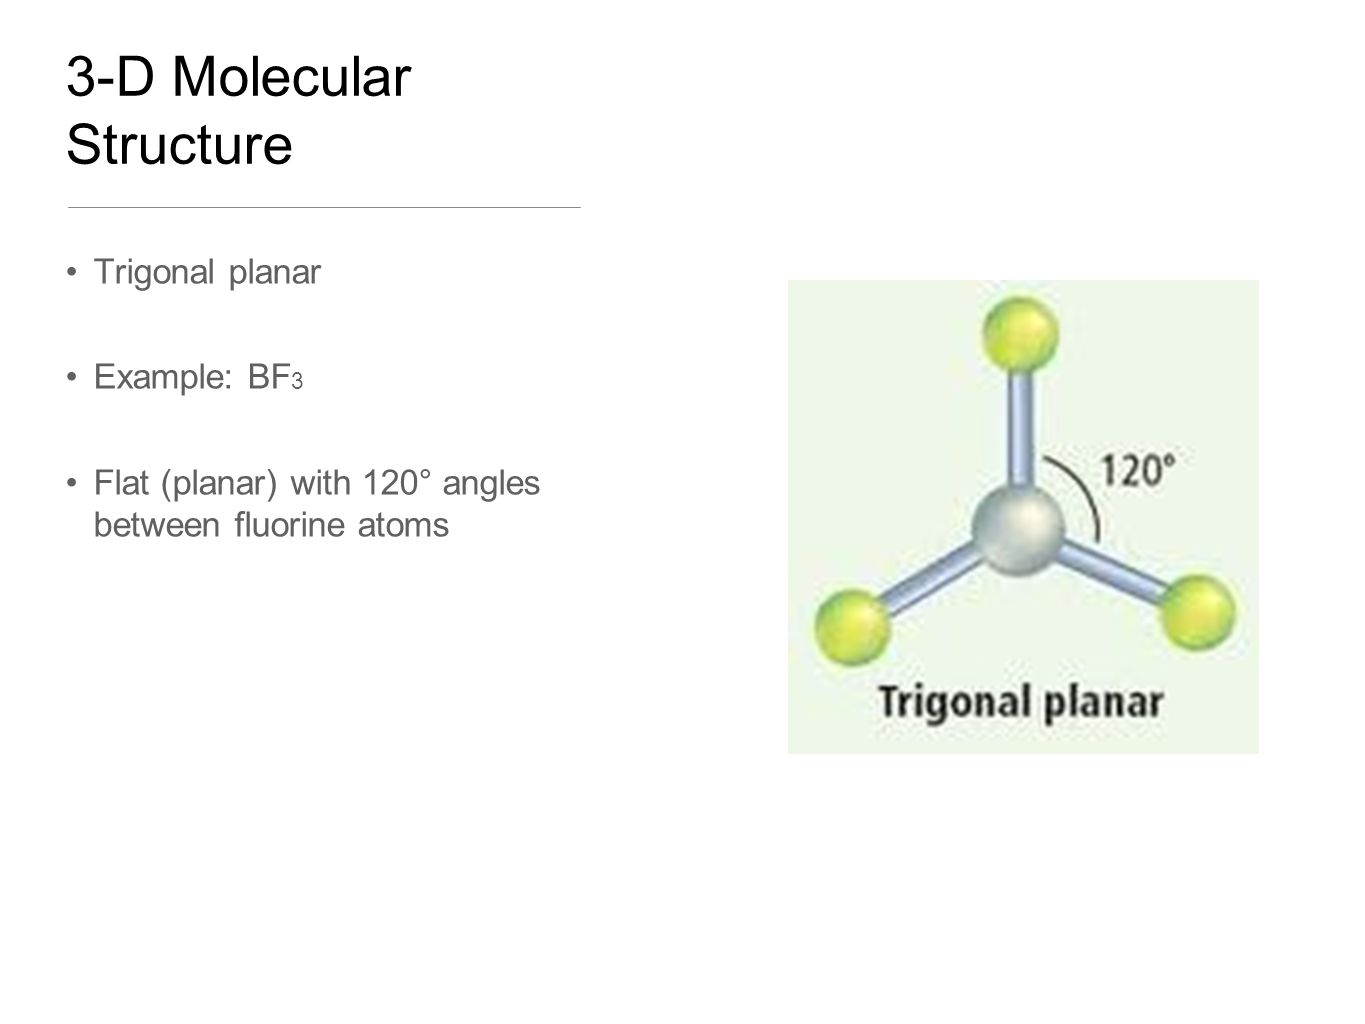 hight resolution of 4 3 d molecular structure trigonal planar example bf 3 flat planar with 120 angles between fluorine atoms